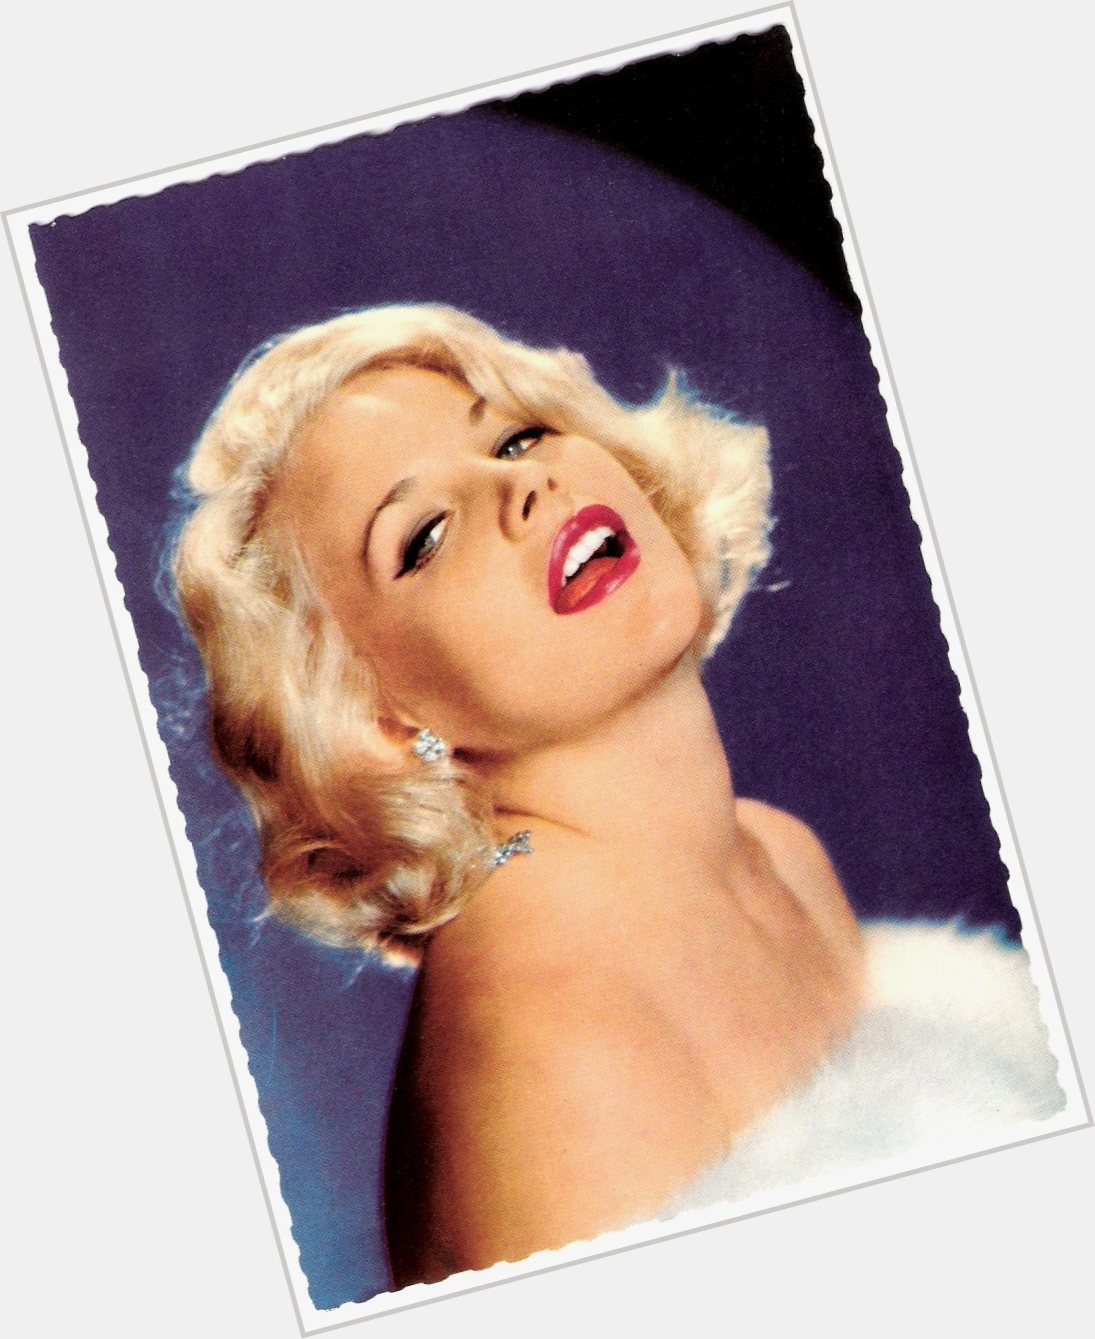 Carroll Baker exclusive hot pic 4.jpg